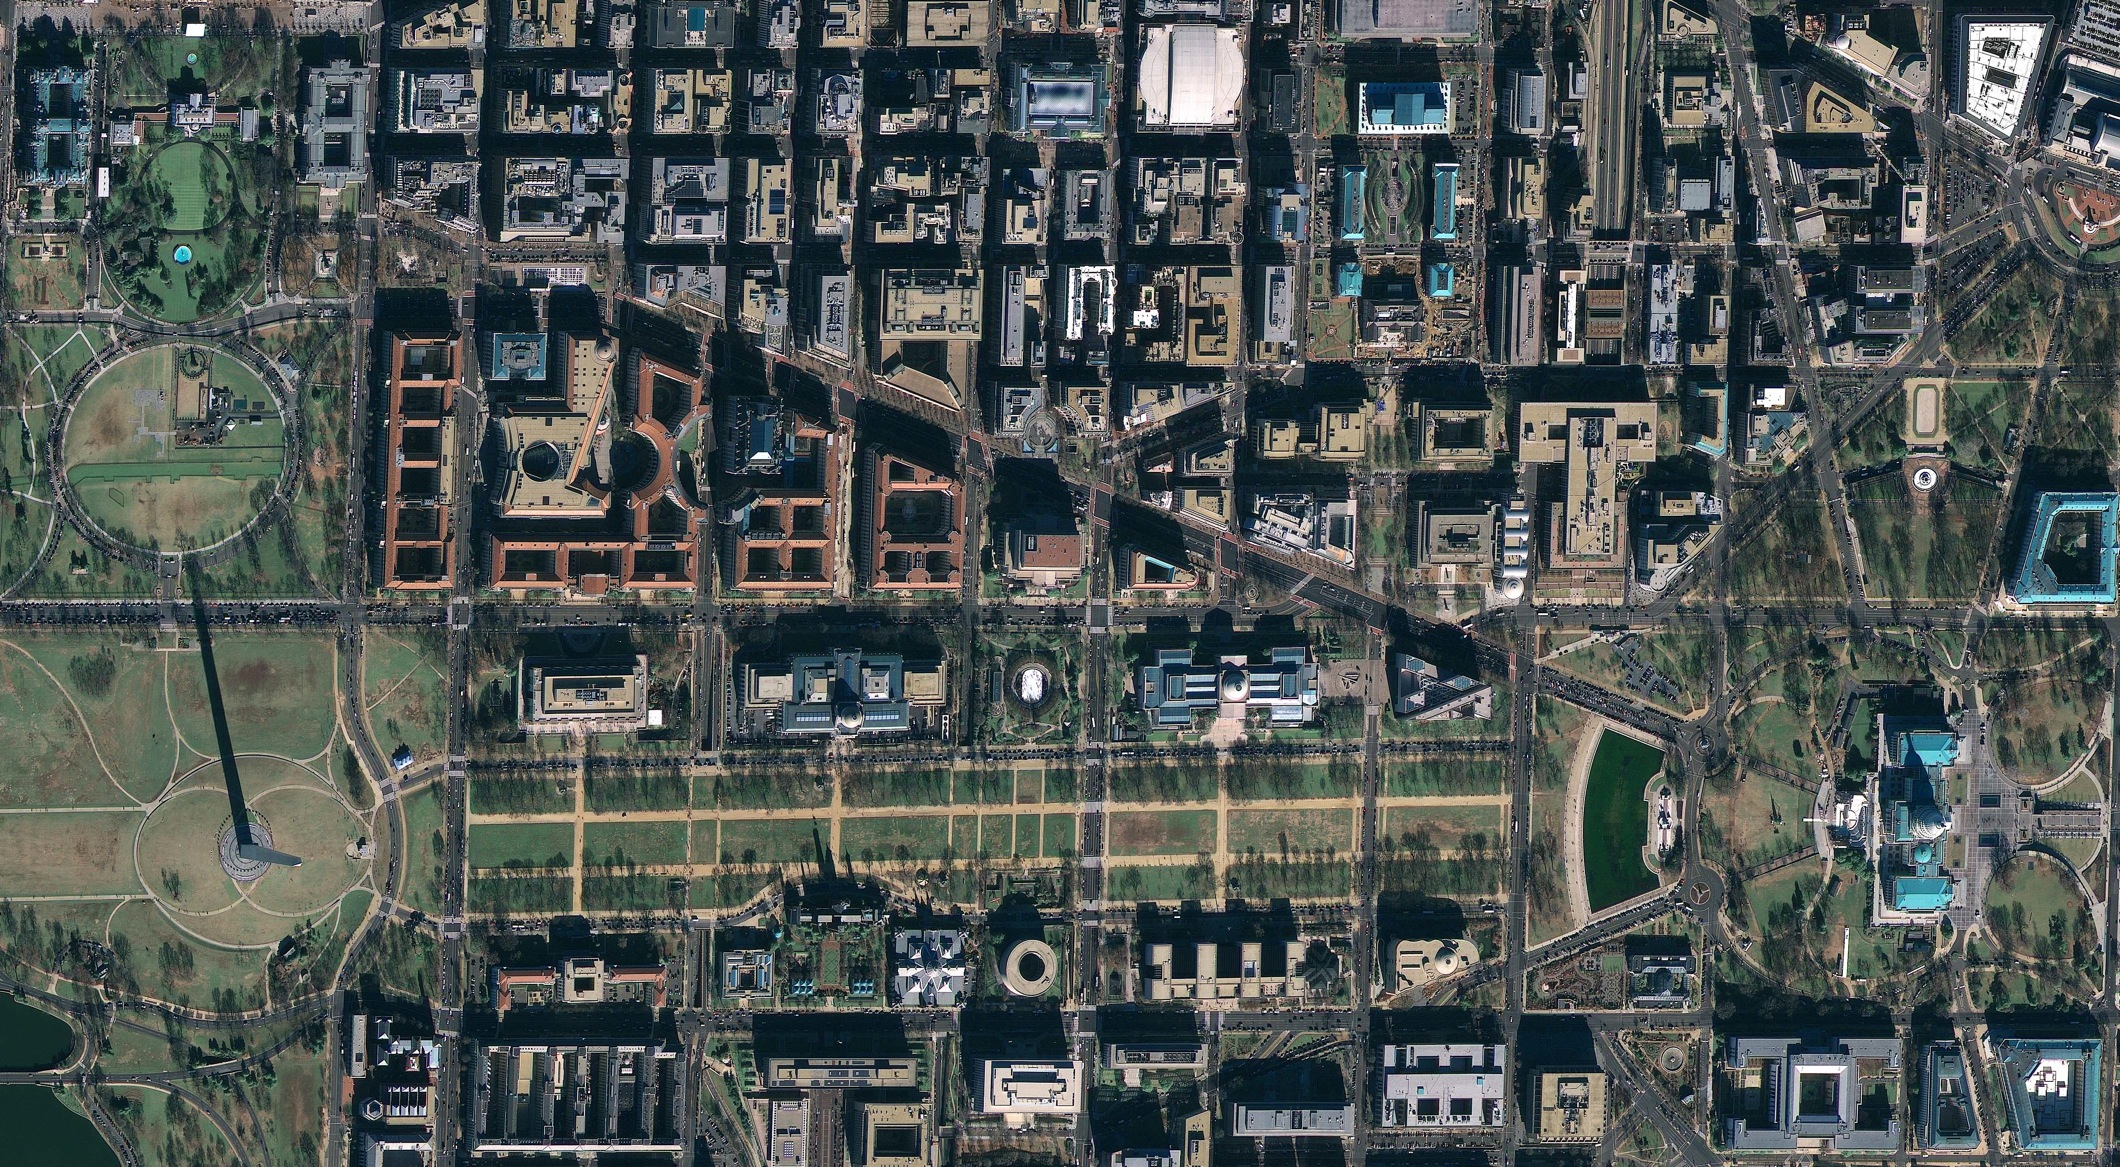 geoeye-dc.jpg